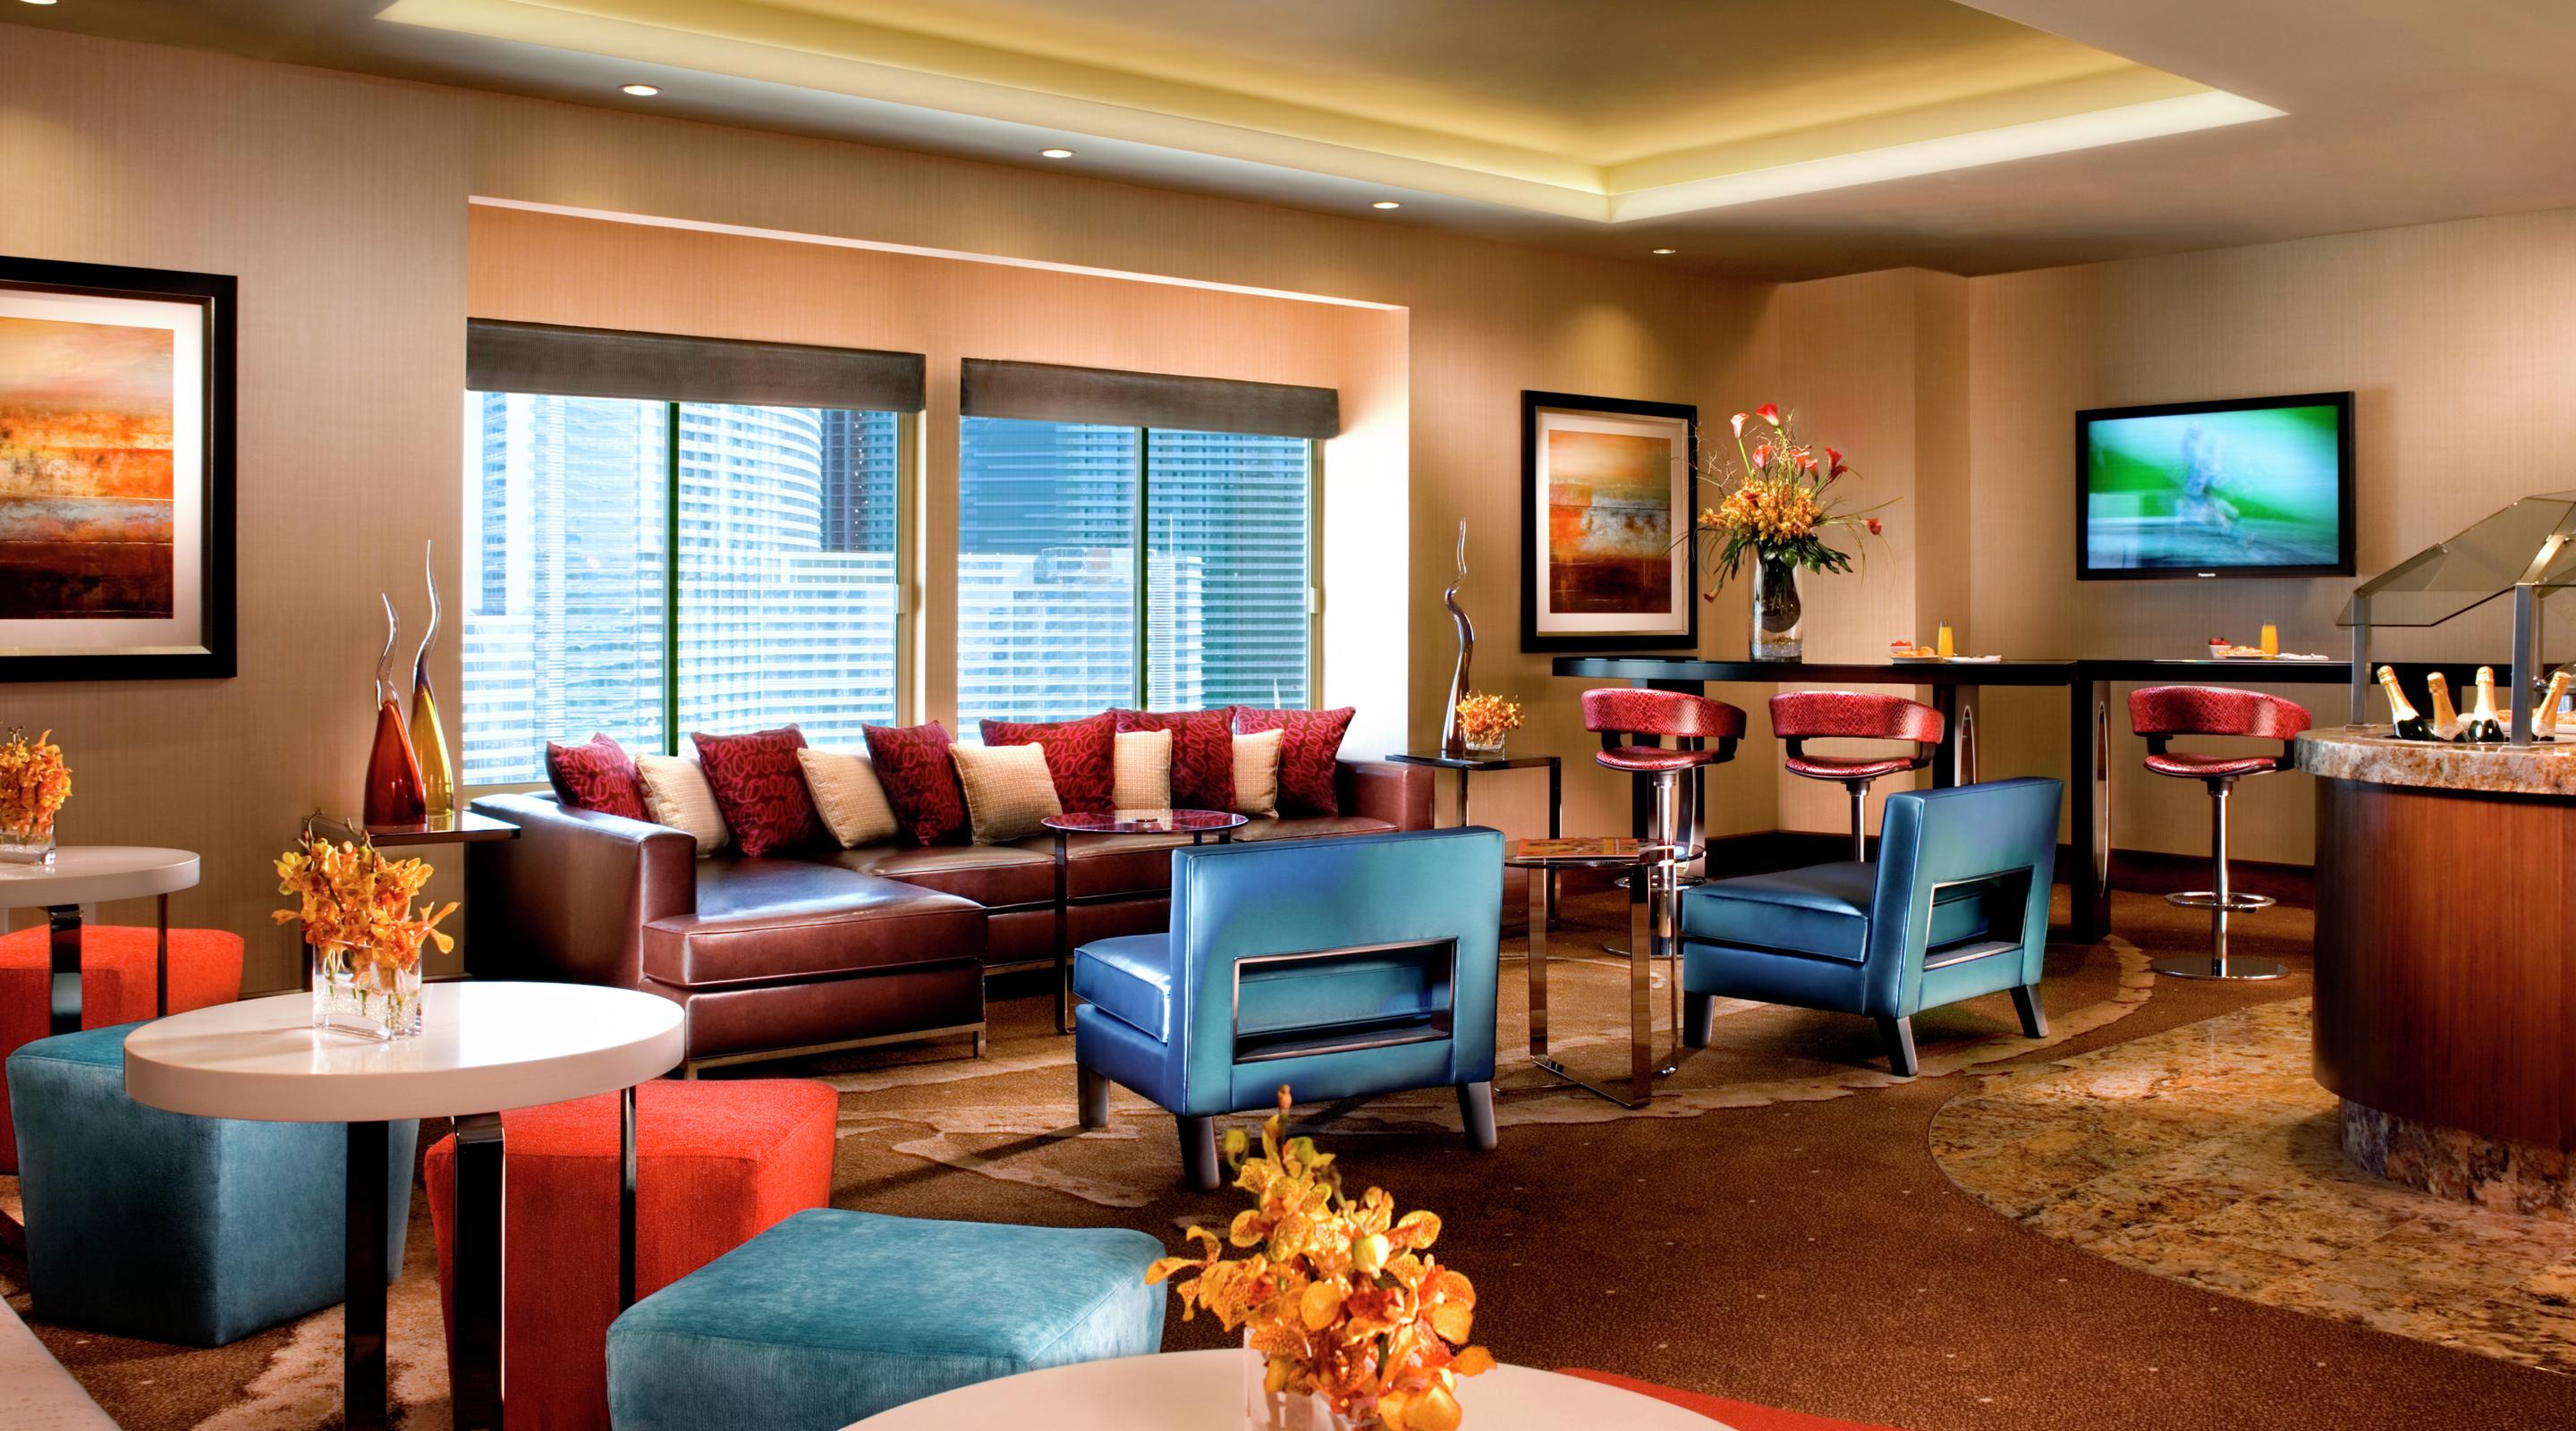 Las Vegas Suites Hotel32 Mgm Resorts